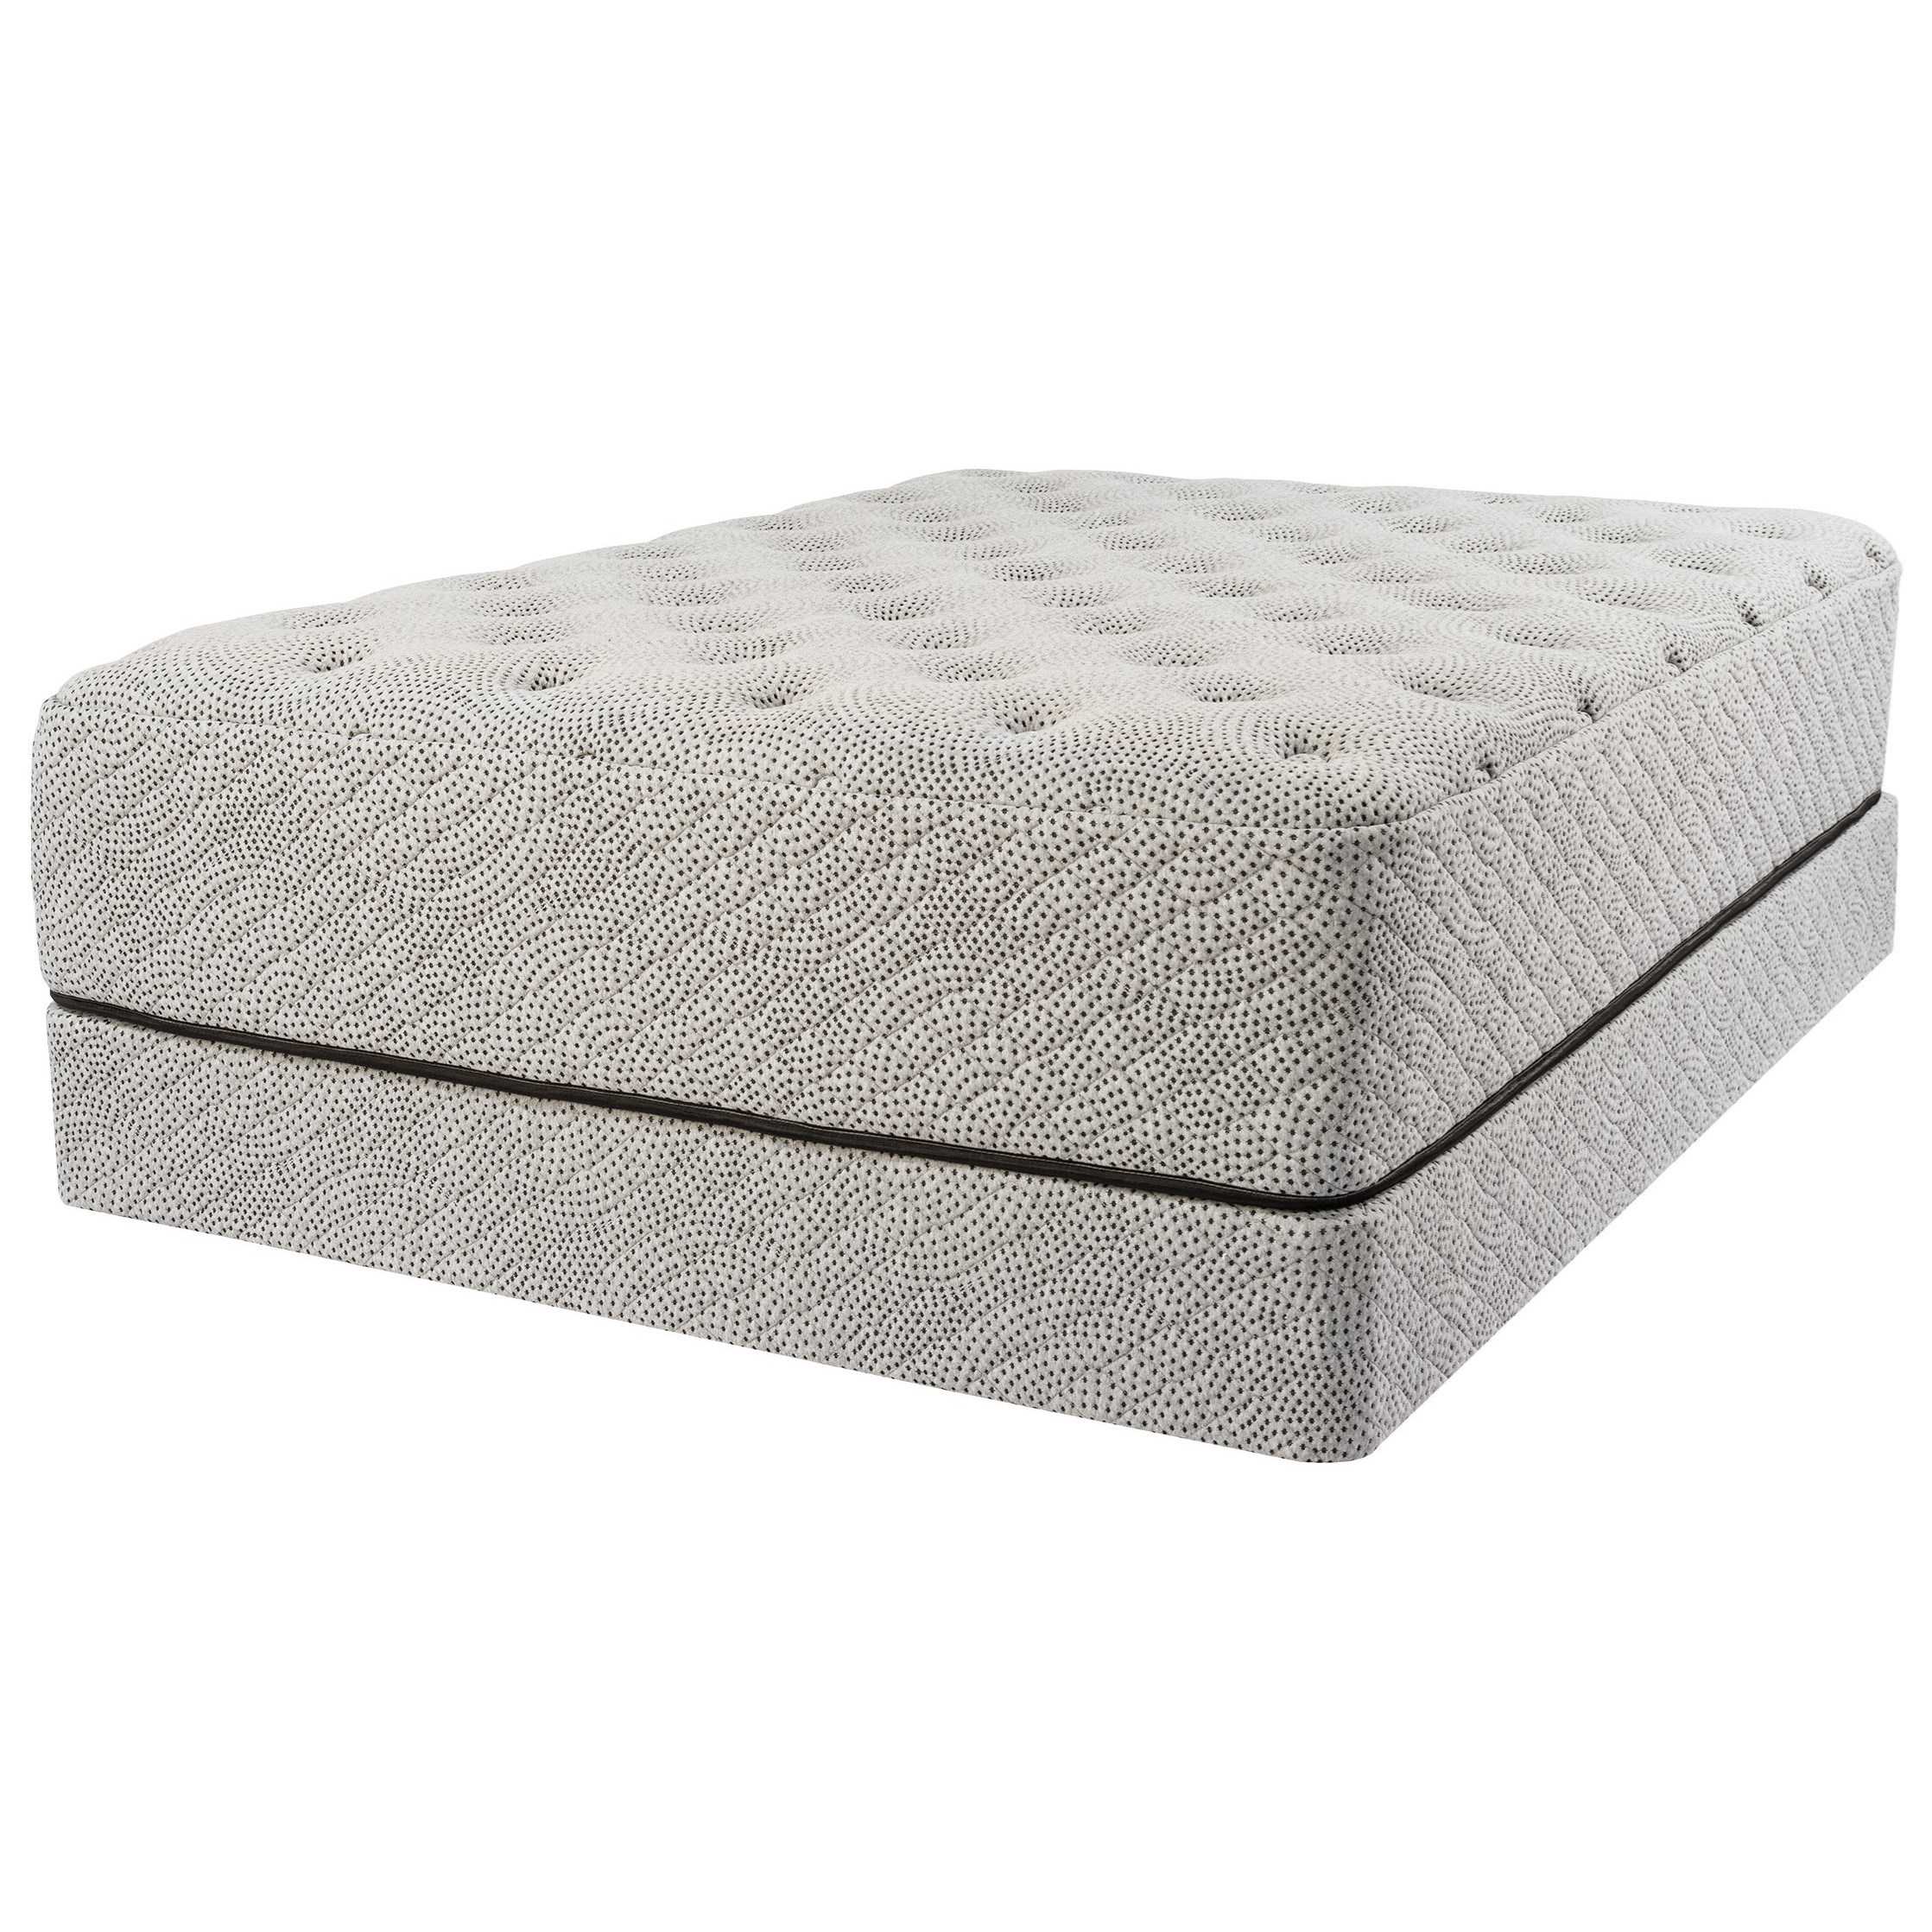 "Milano Cushion Firm Twin XL 14"" Cushion Firm Mattress Set by Sonnett Sleep at Rotmans"